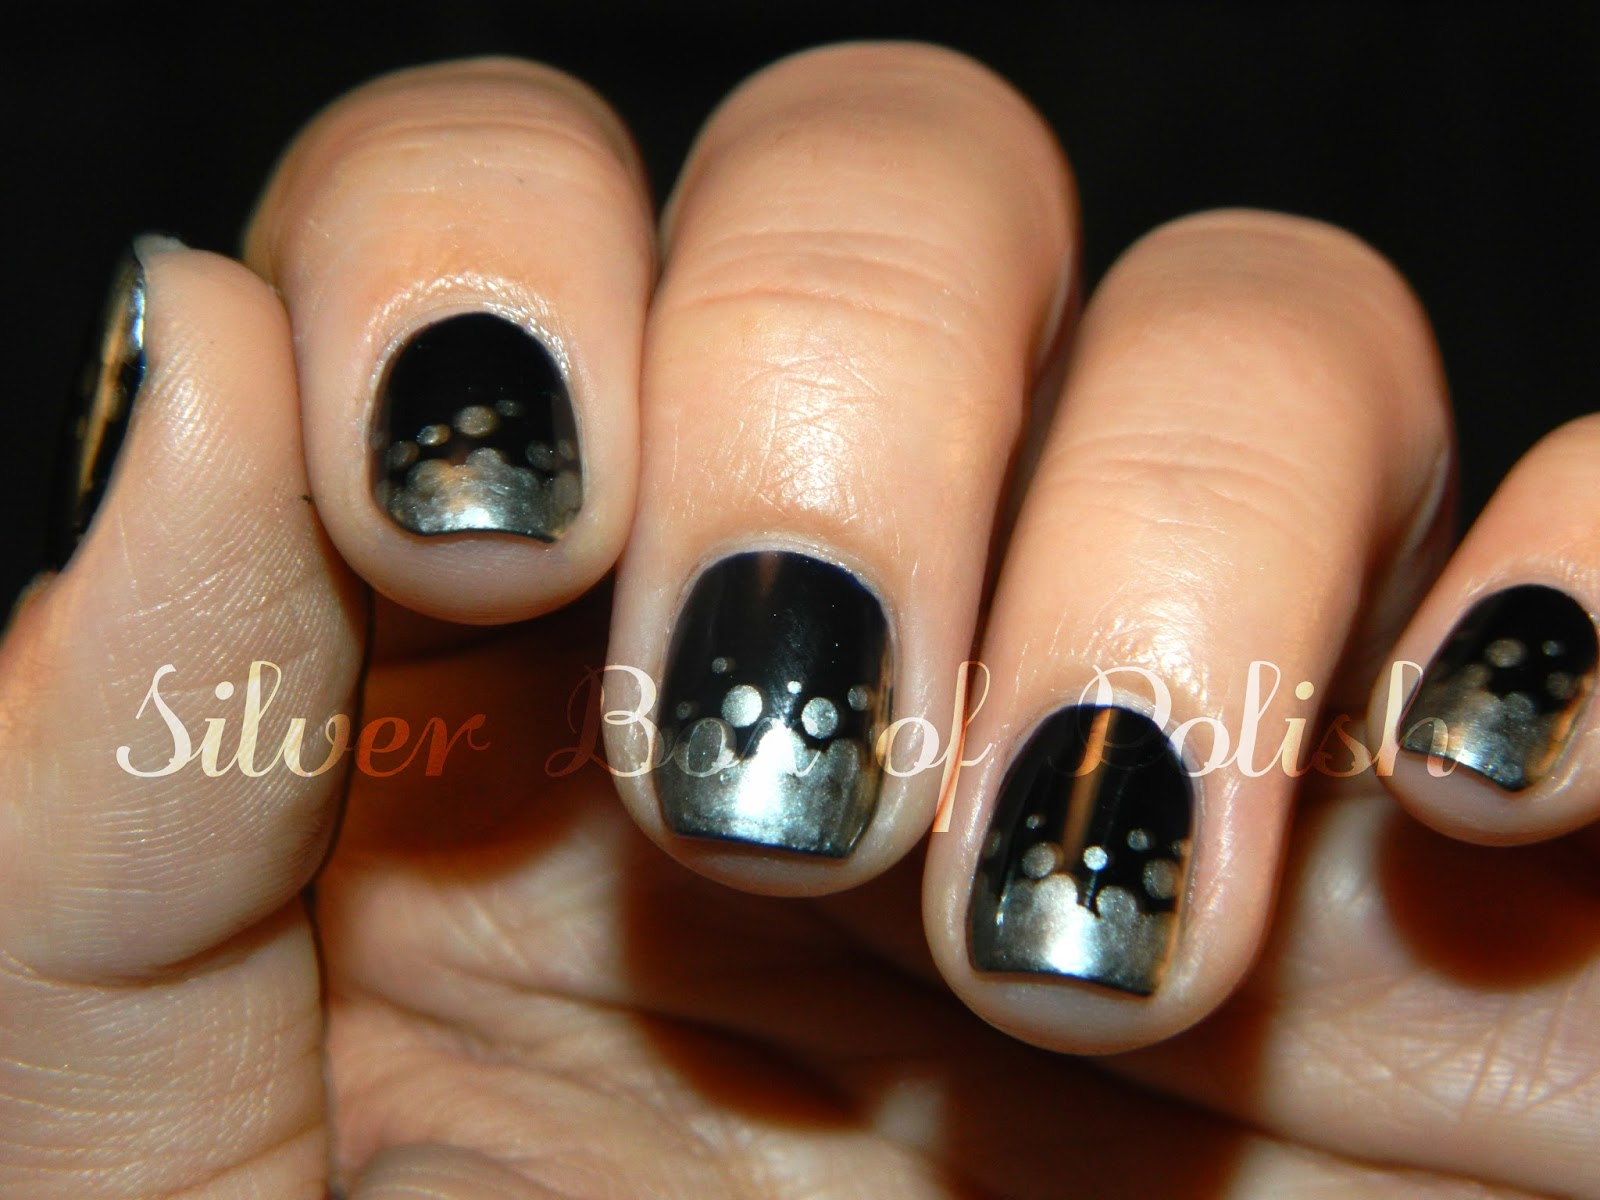 Nails French Tumblr - 2018 images & pictures - french nails on Tumblr